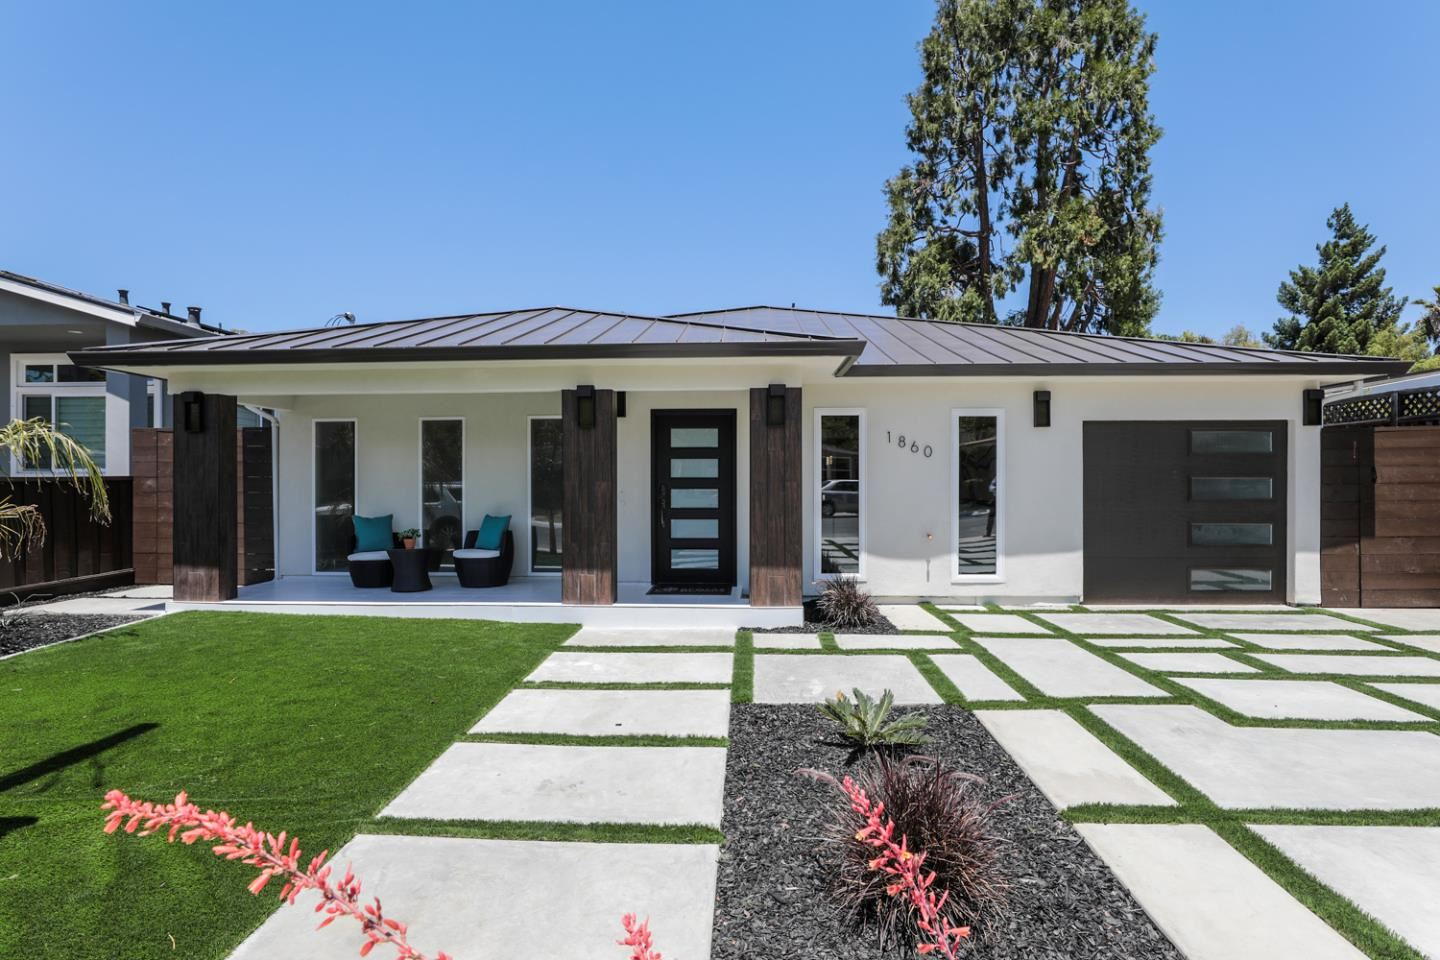 Photo for 1860 Wagner Avenue, MOUNTAIN VIEW, CA 94043 (MLS # ML81848014)